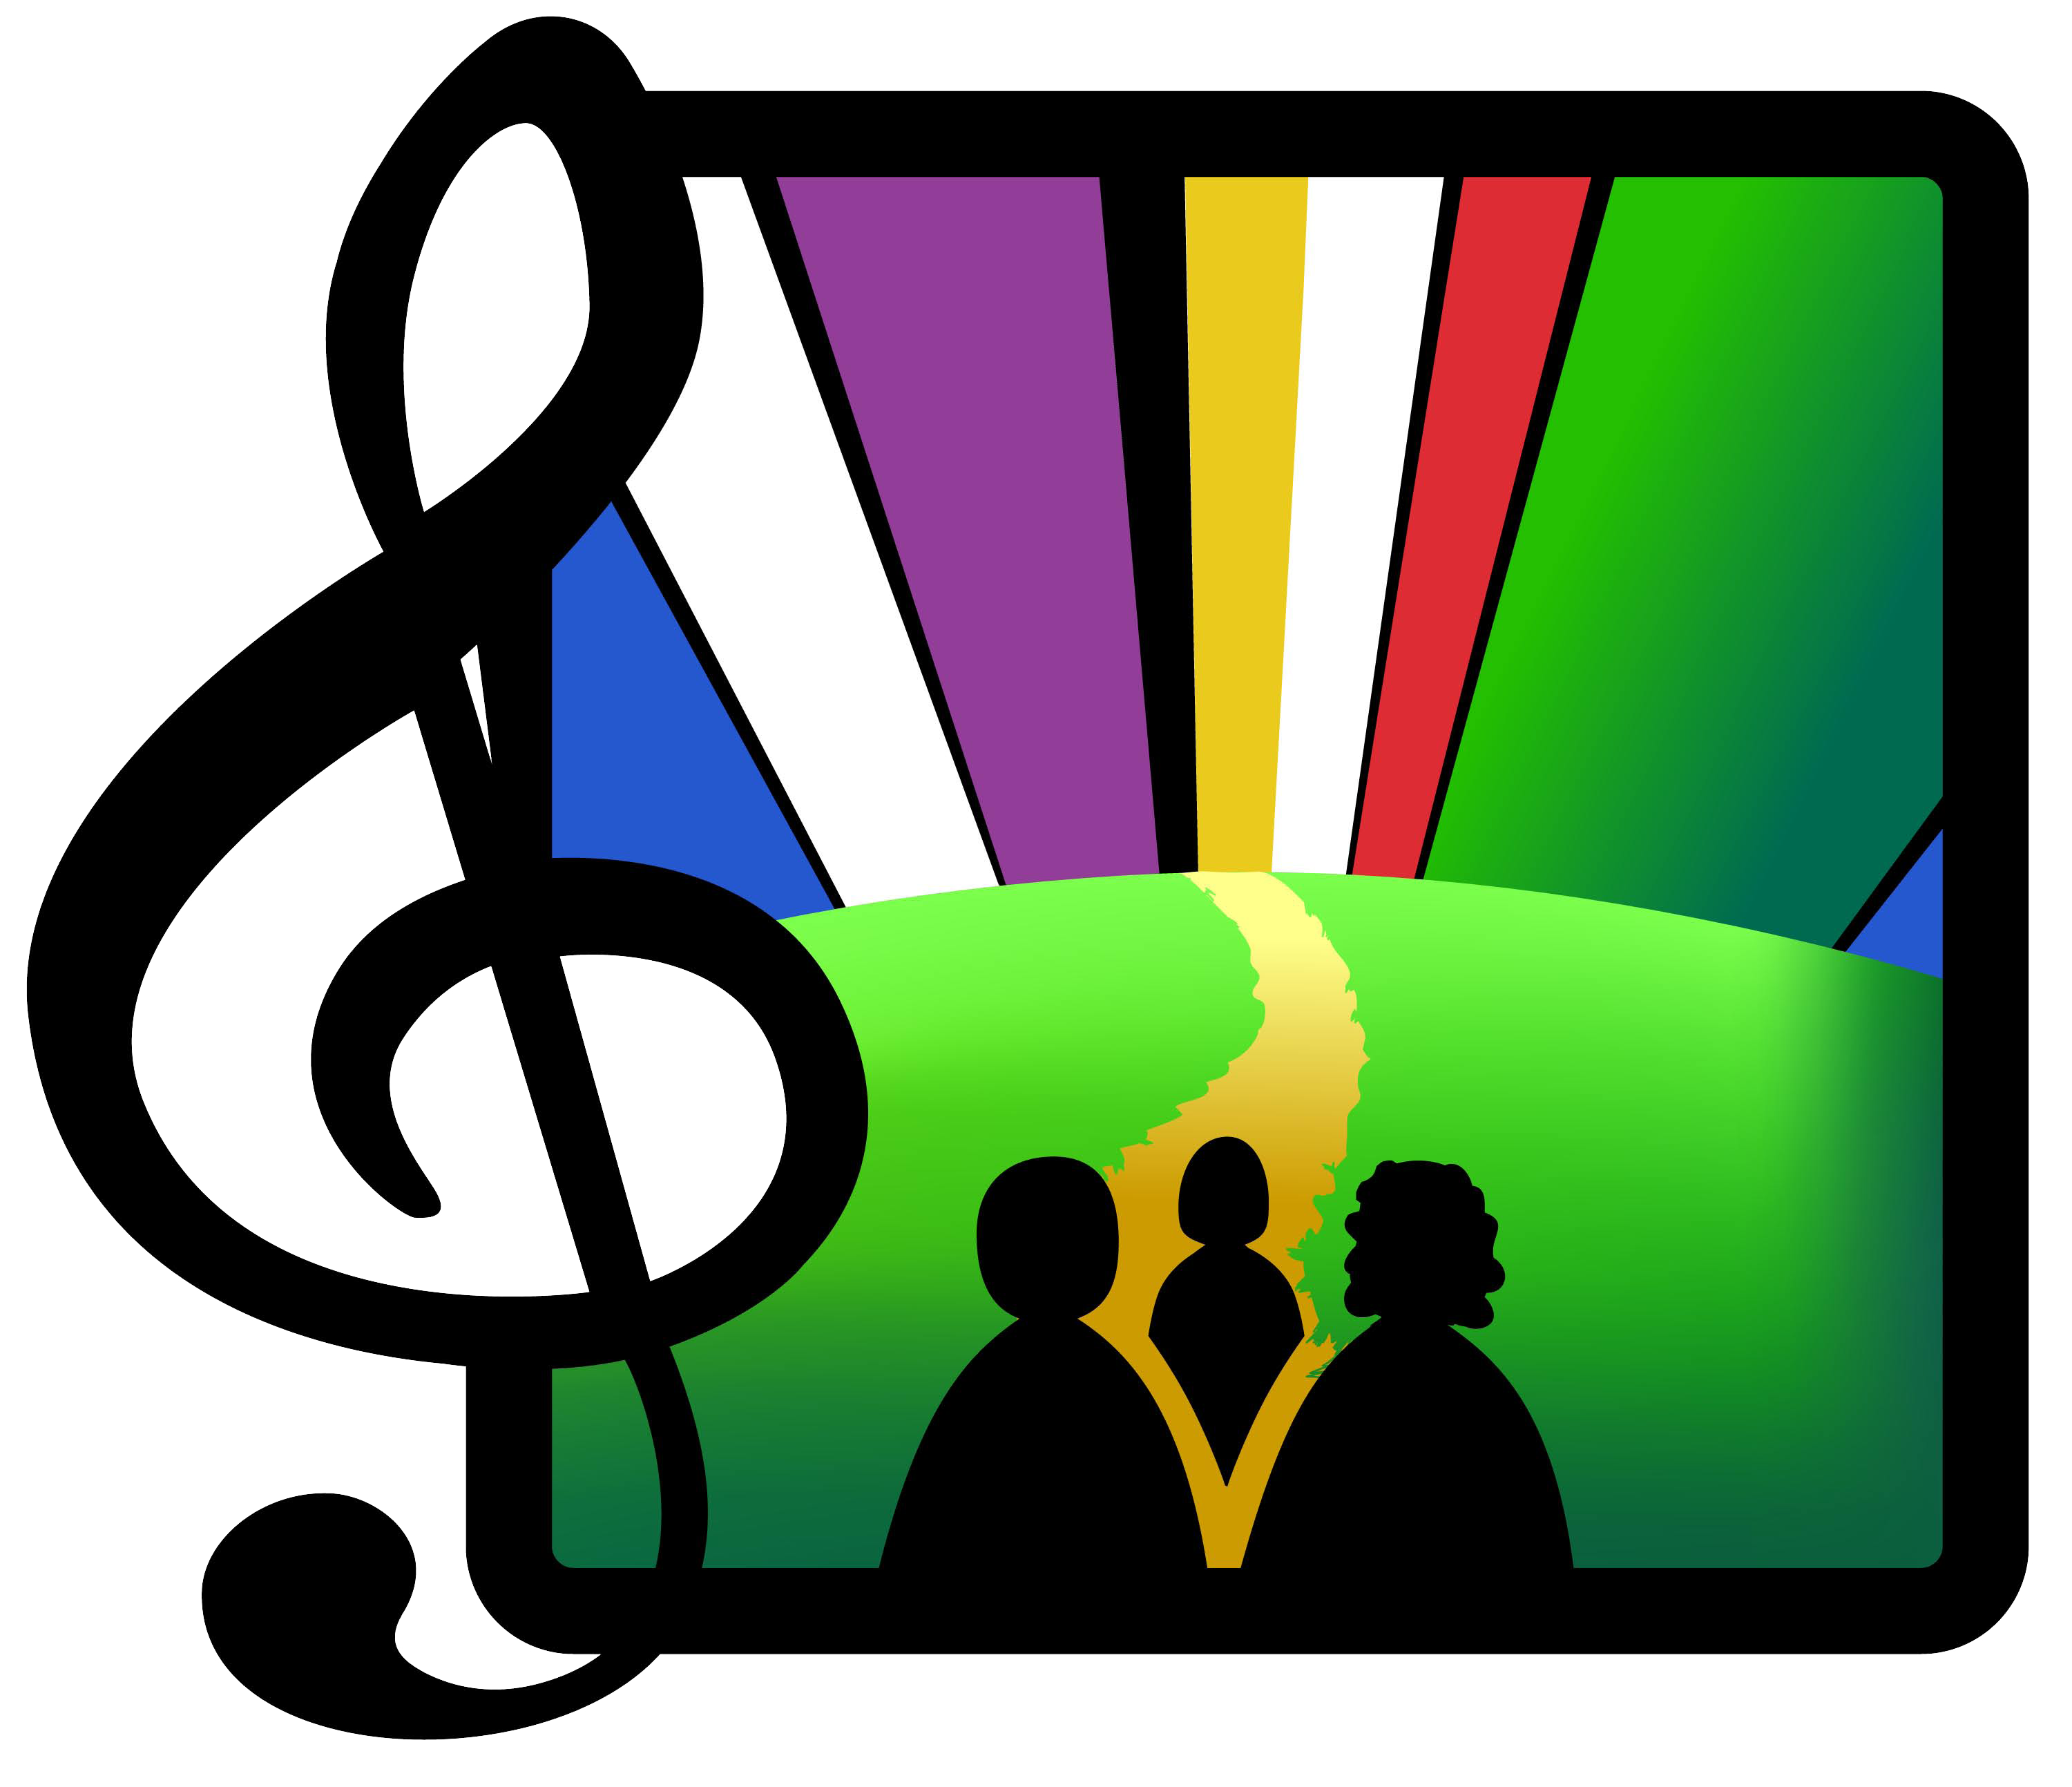 Missions clipart discipleship. Songs for disciples logo